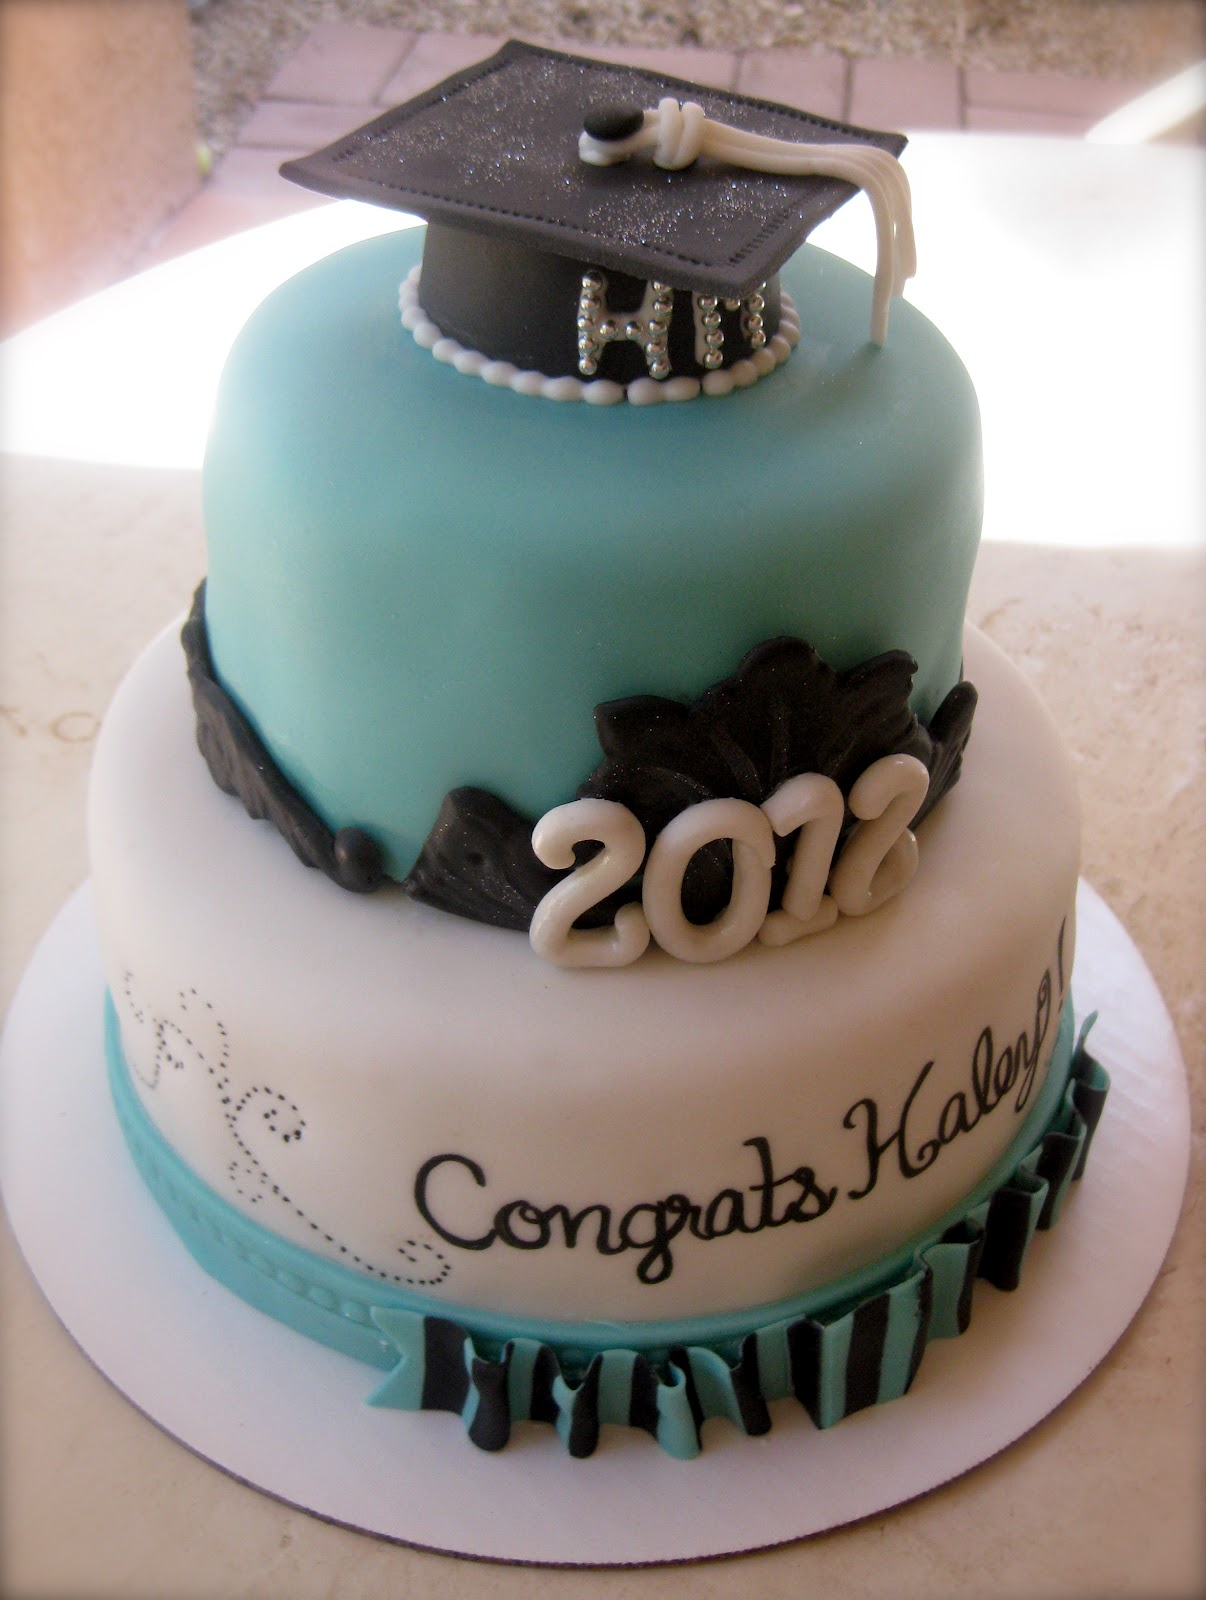 Graduation Cakes Inspiration on Pinterest Graduation ...